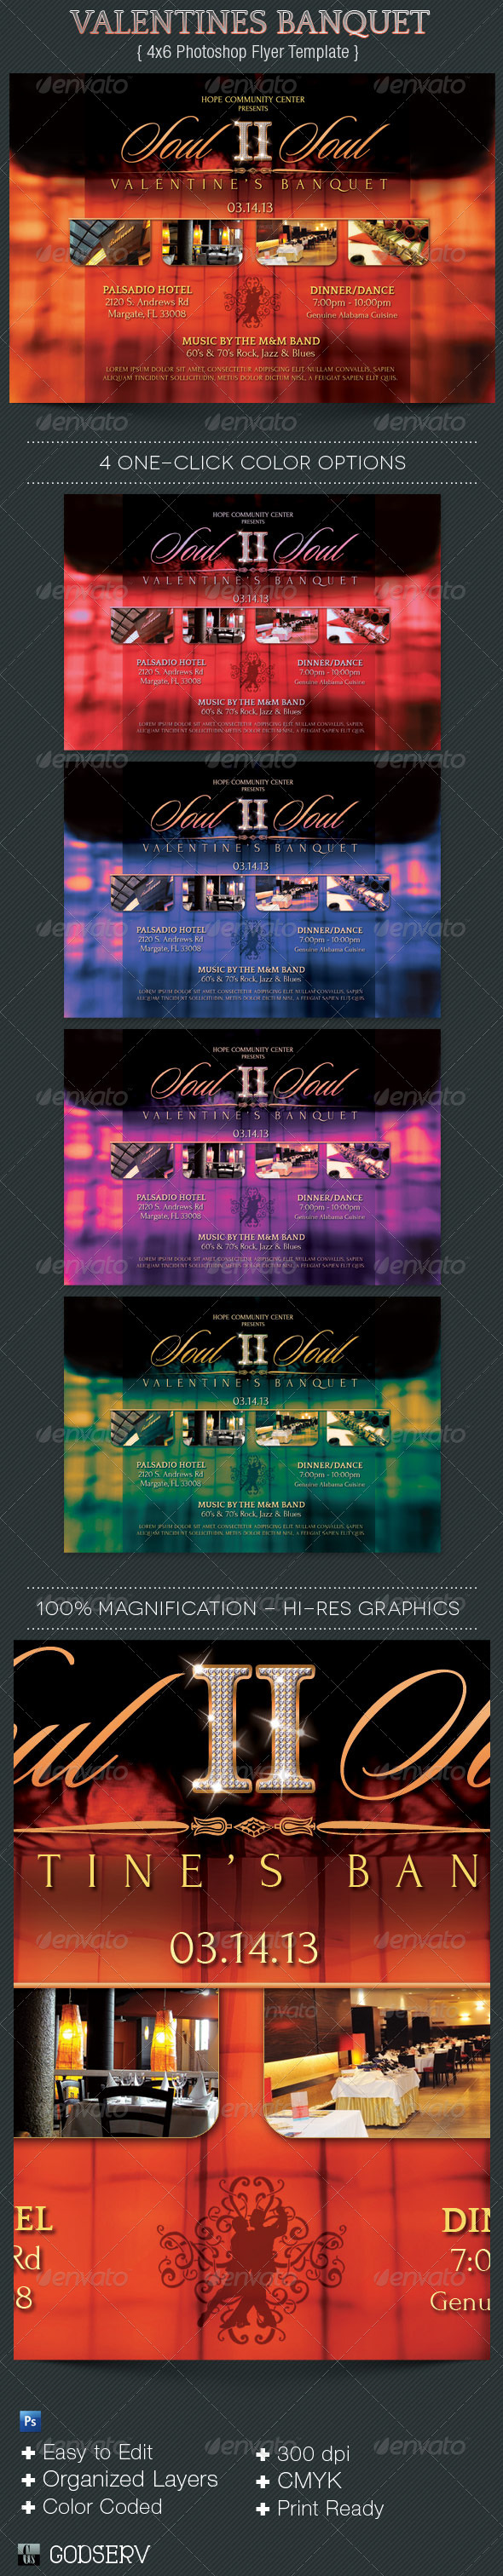 GraphicRiver Valentines Banquet Flyer Template 3737768